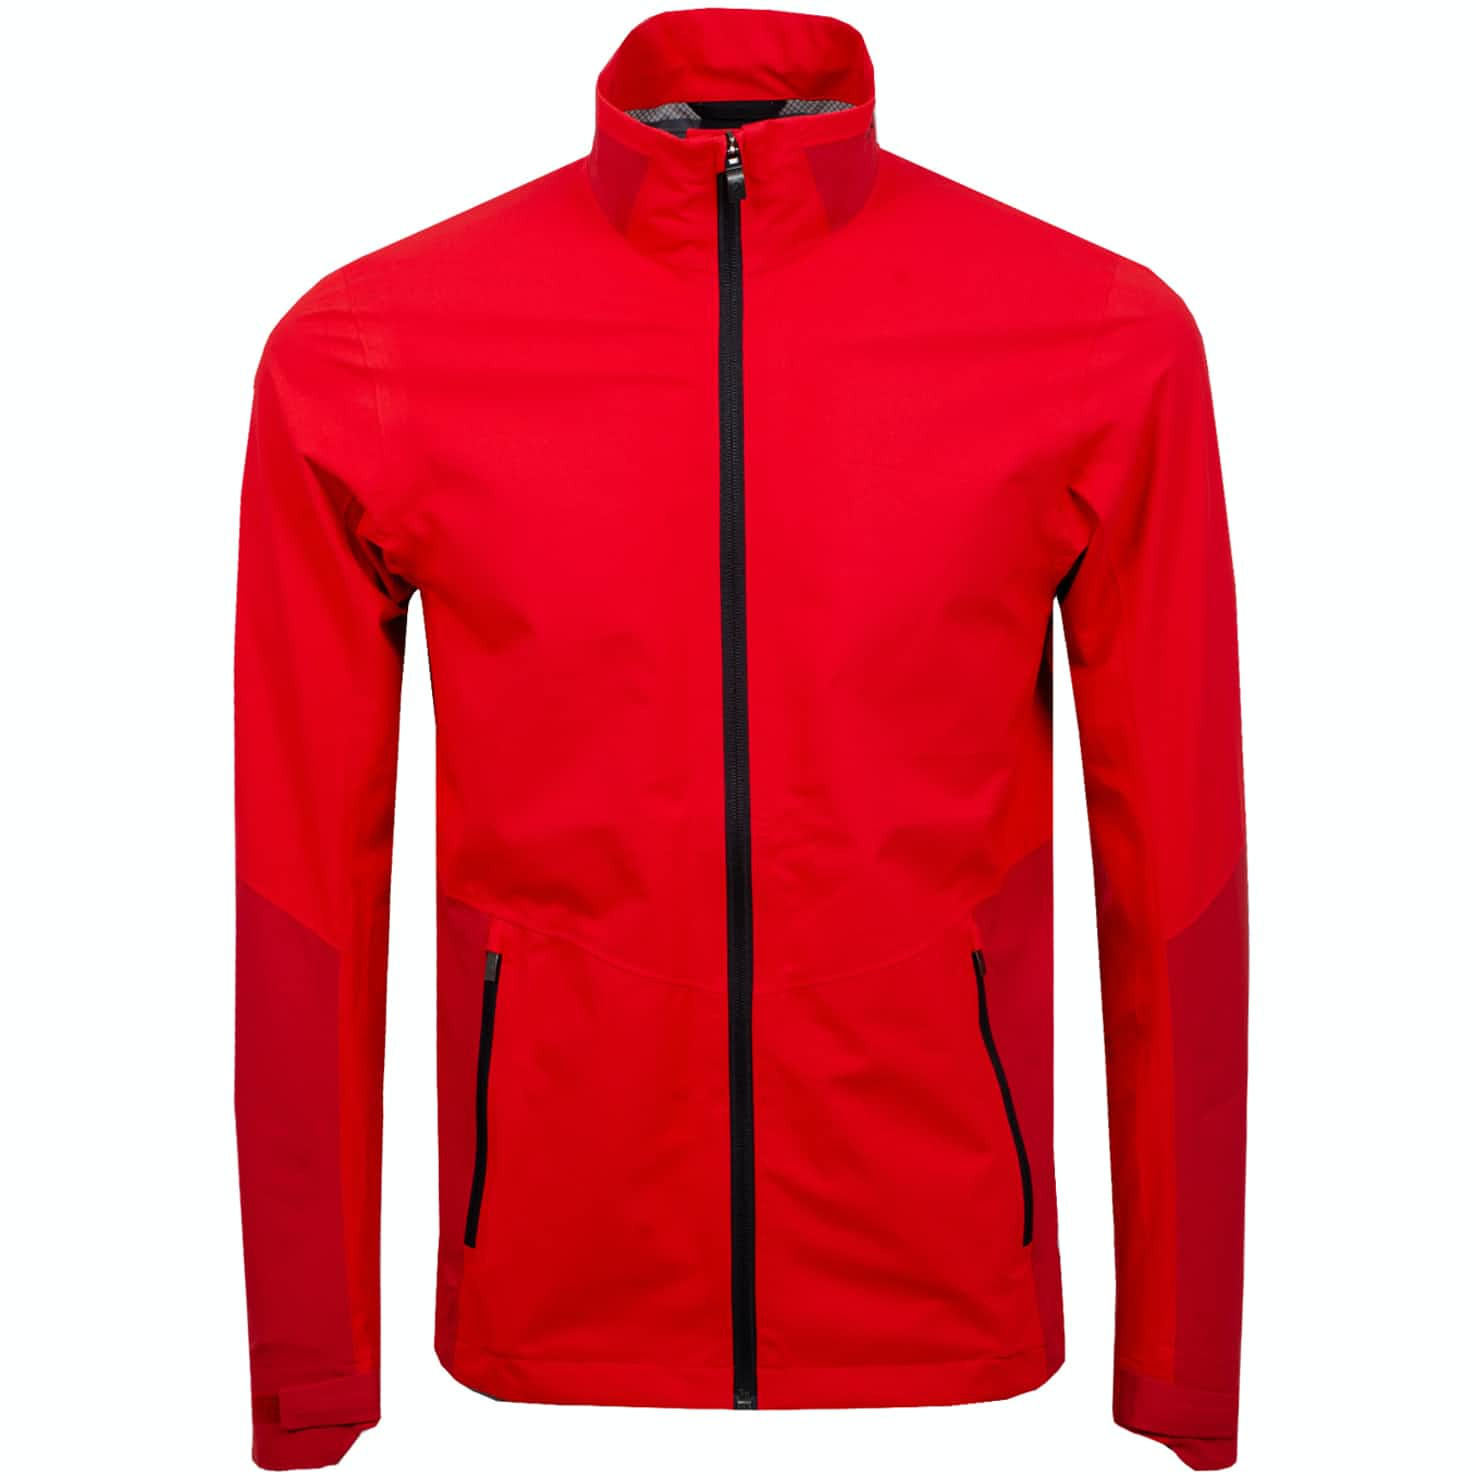 Course Jacket Chinese Red - 2019